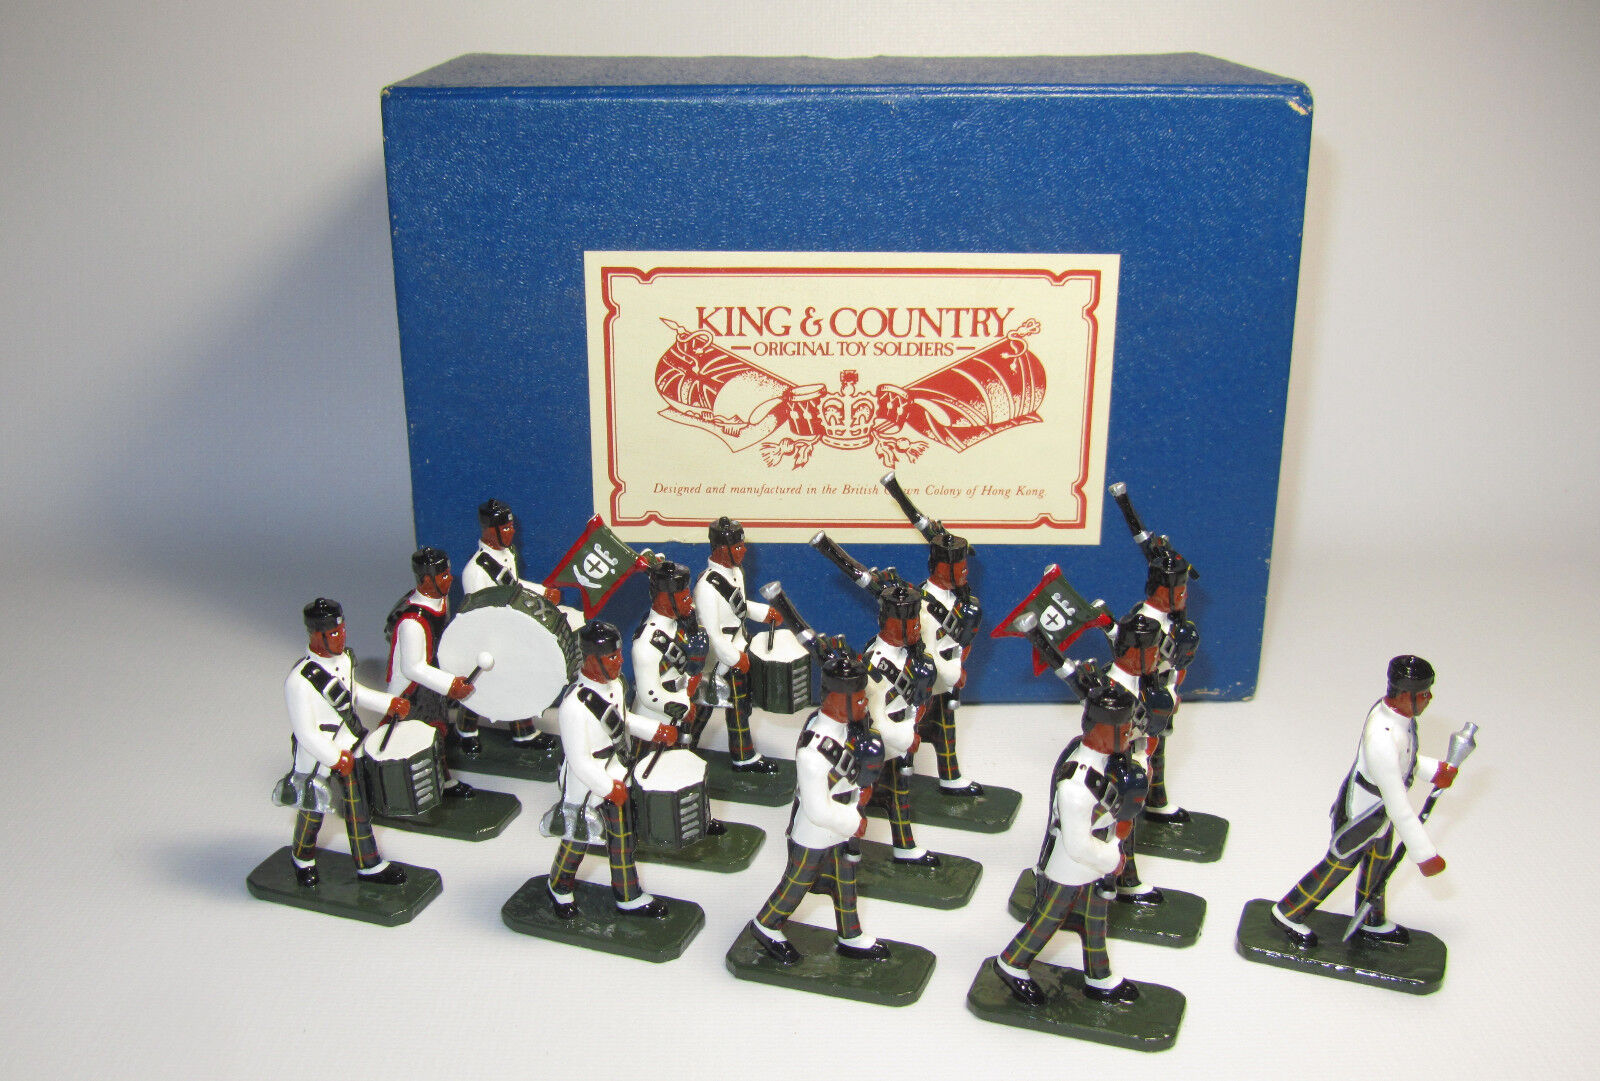 King & Country Glossy  GRPD1 10th Gurkha Rifles Pipes Pipes Pipes & Drum Band  K&C 8410.1 d90fa8